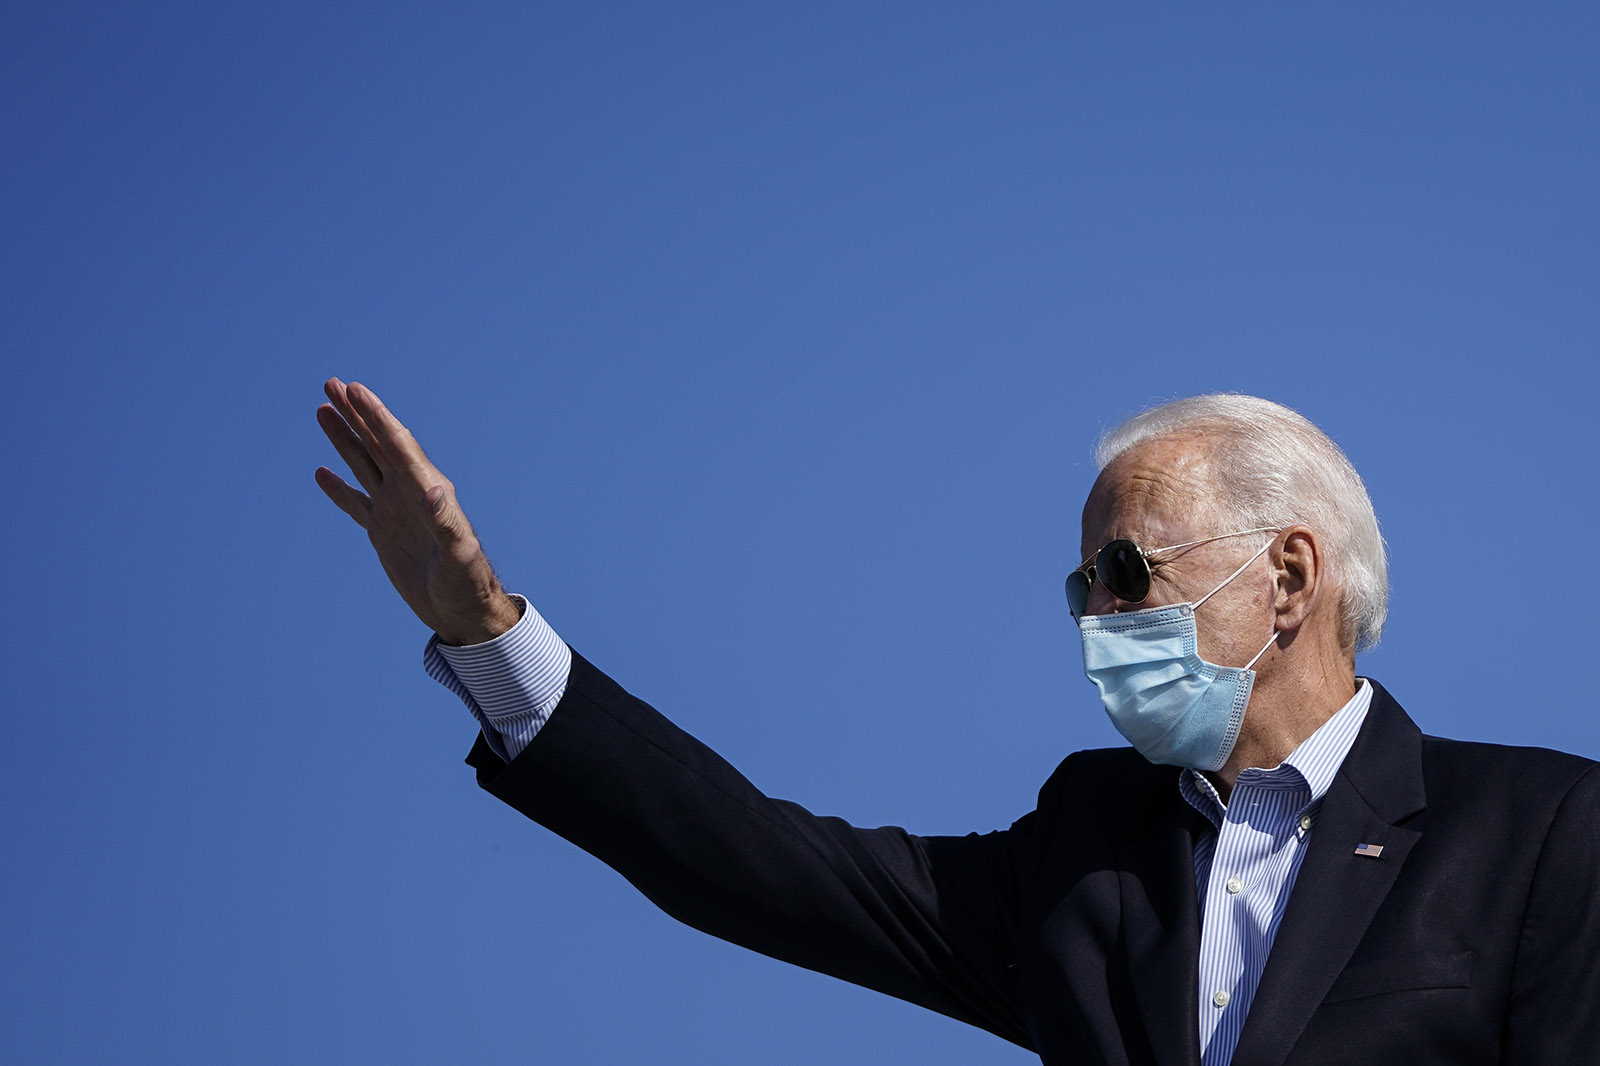 Democratic presidential nominee Joe Biden waves as he boards his campaign plane at New Castle Airport on October 22, in New Castle, Delaware.